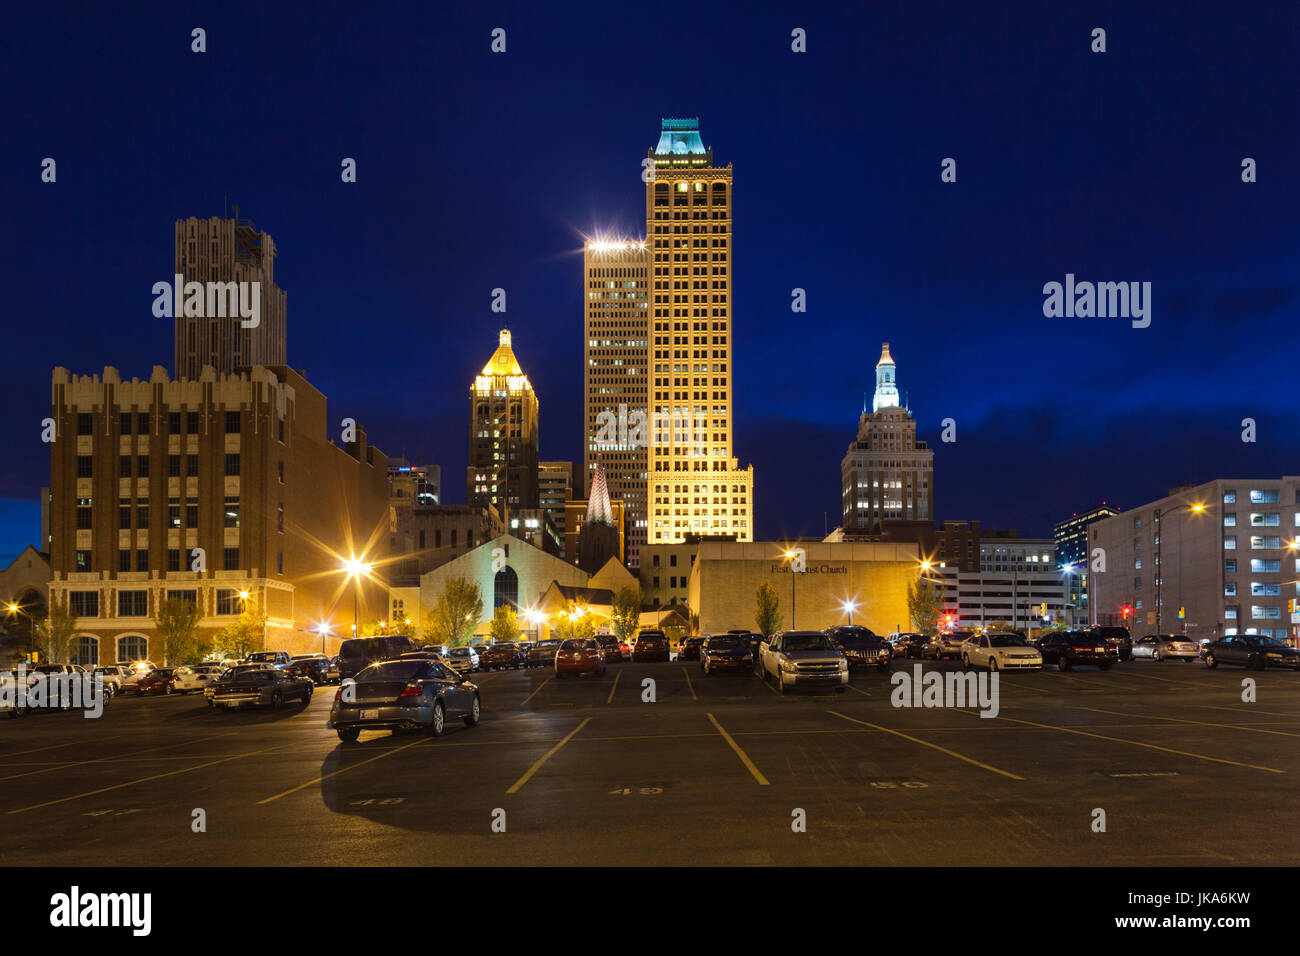 USA, Oklahoma, Tulsa, old and new high rise buildings, Art-Deco district, dusk - Stock Image